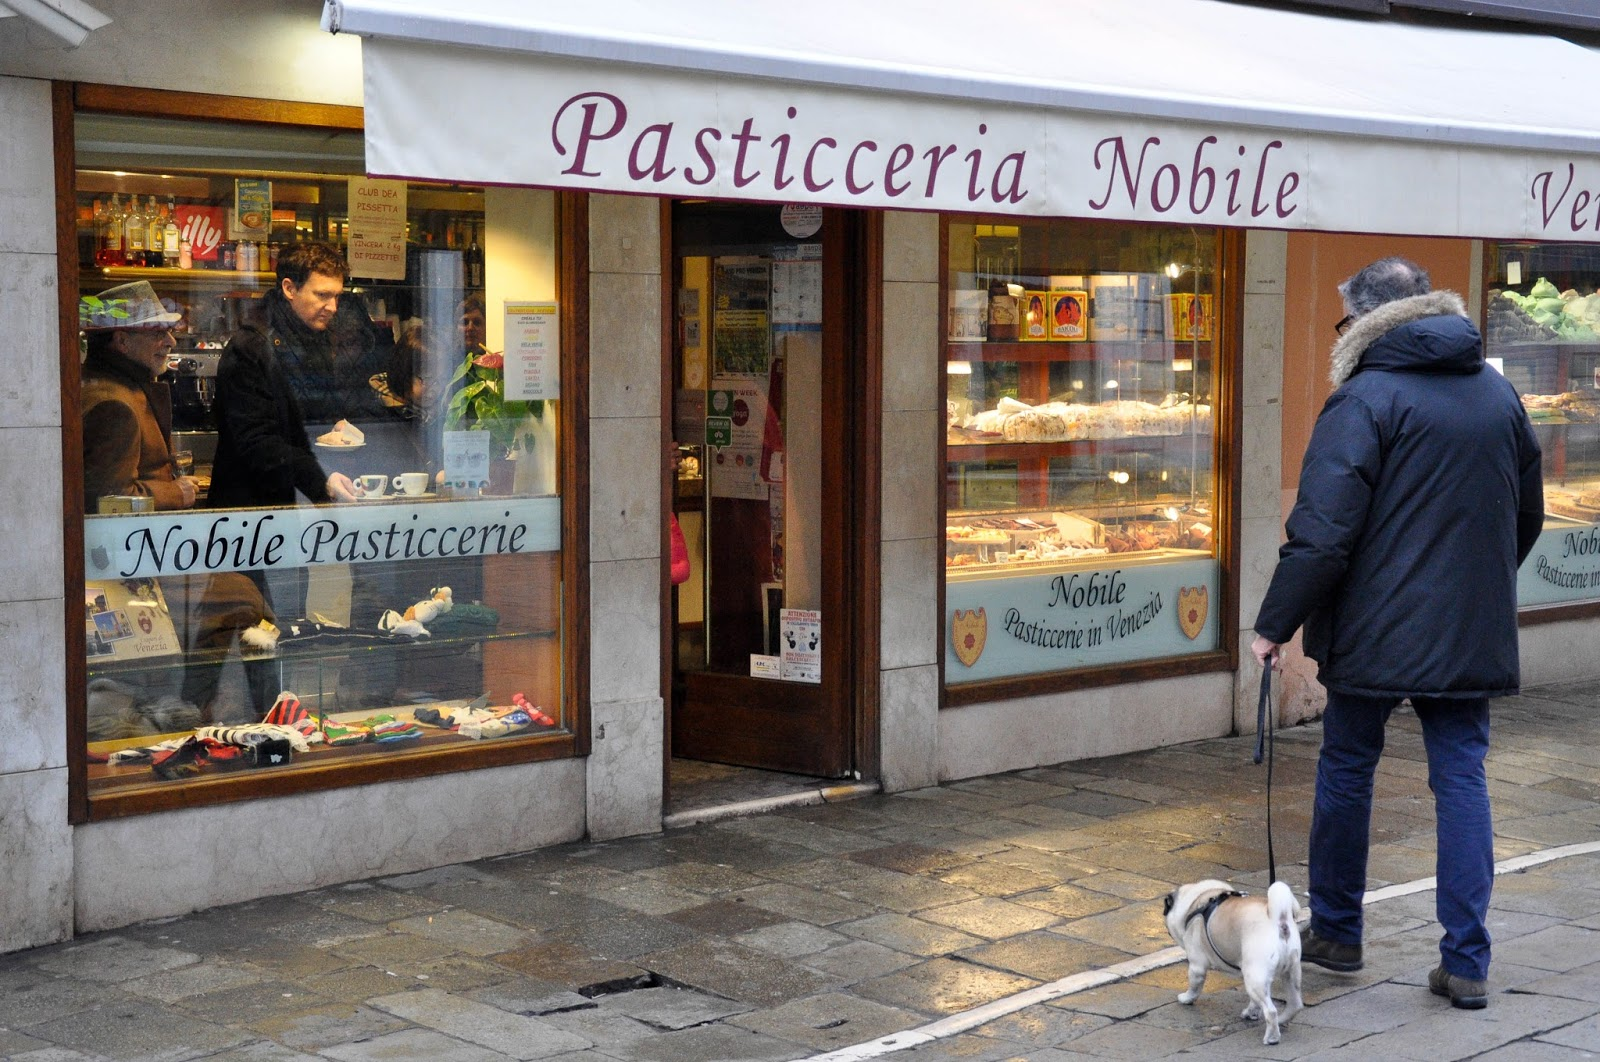 A man and his dog heading to the patisserie, Venice, Italy